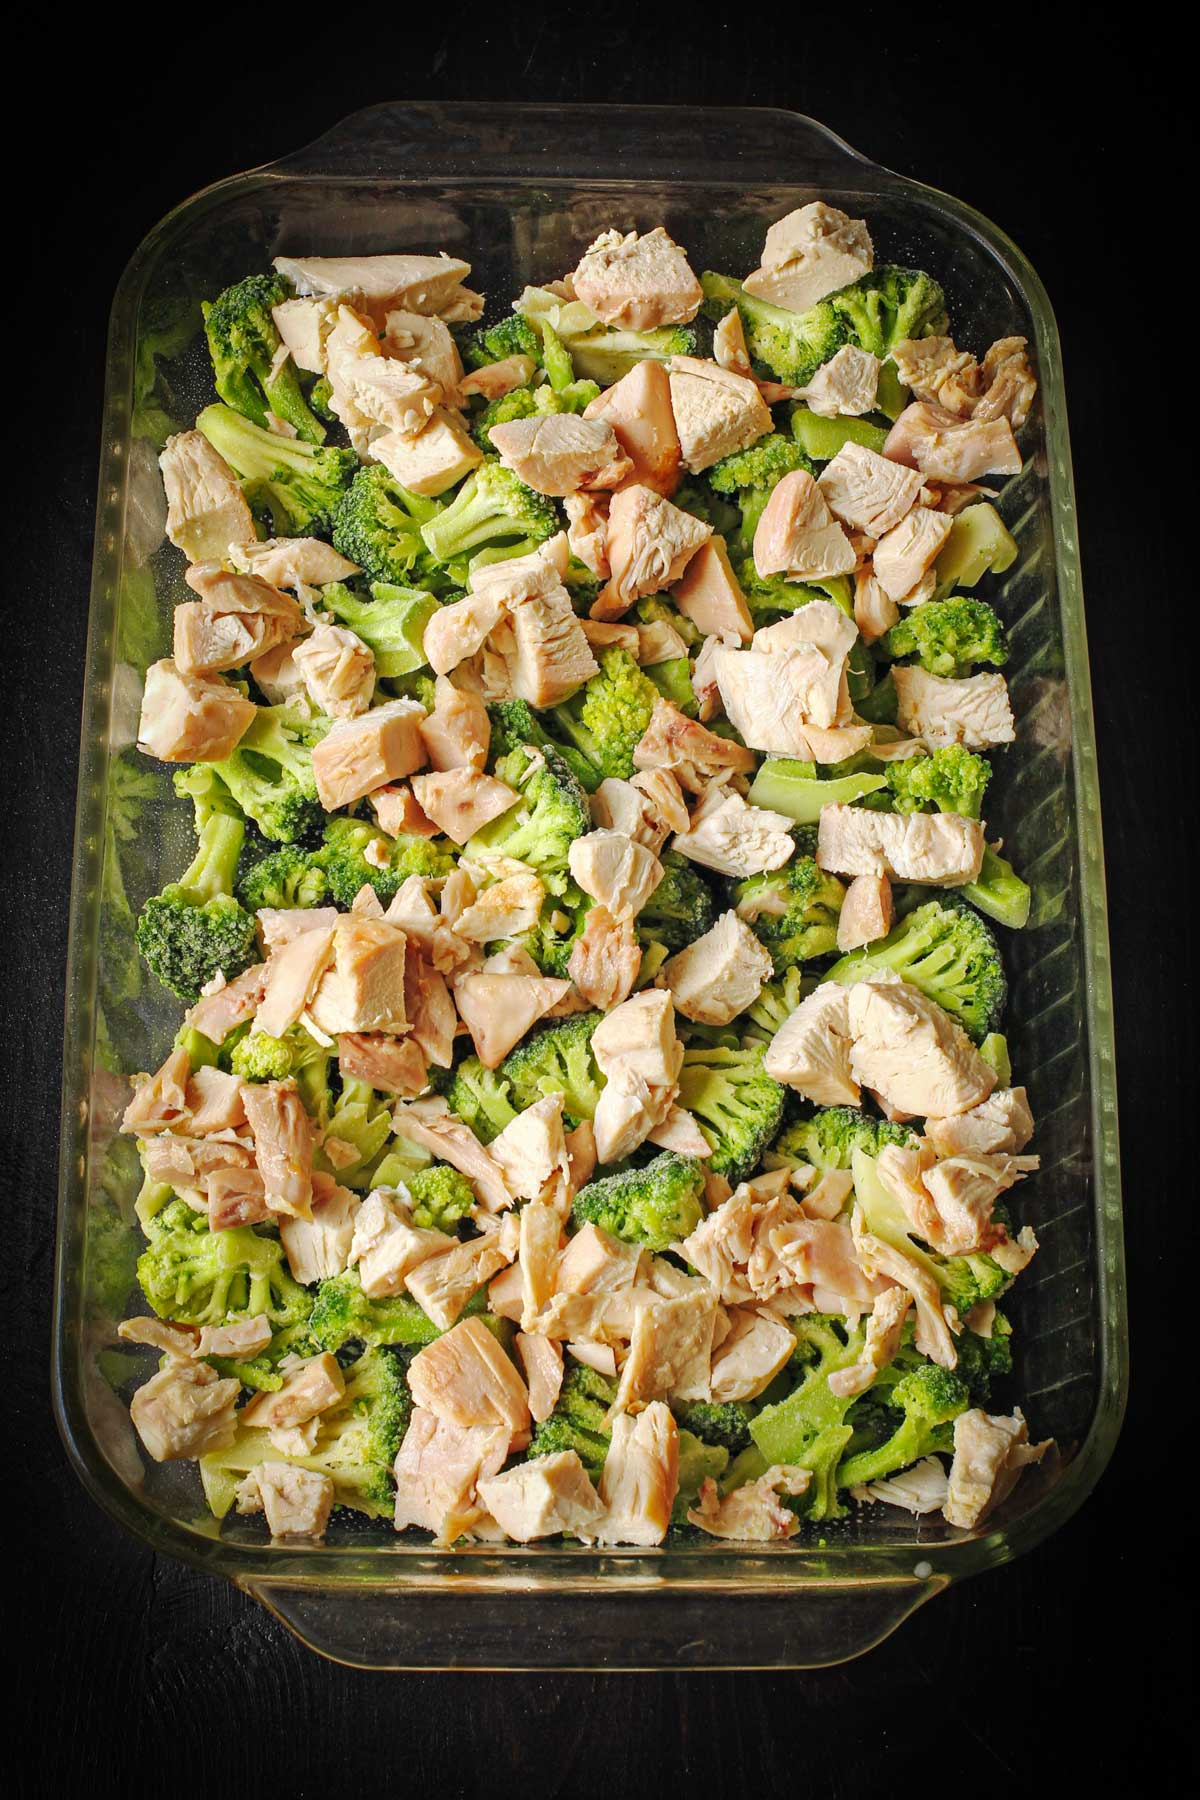 layer of cooked and cubed chicken atop the layer of broccoli.